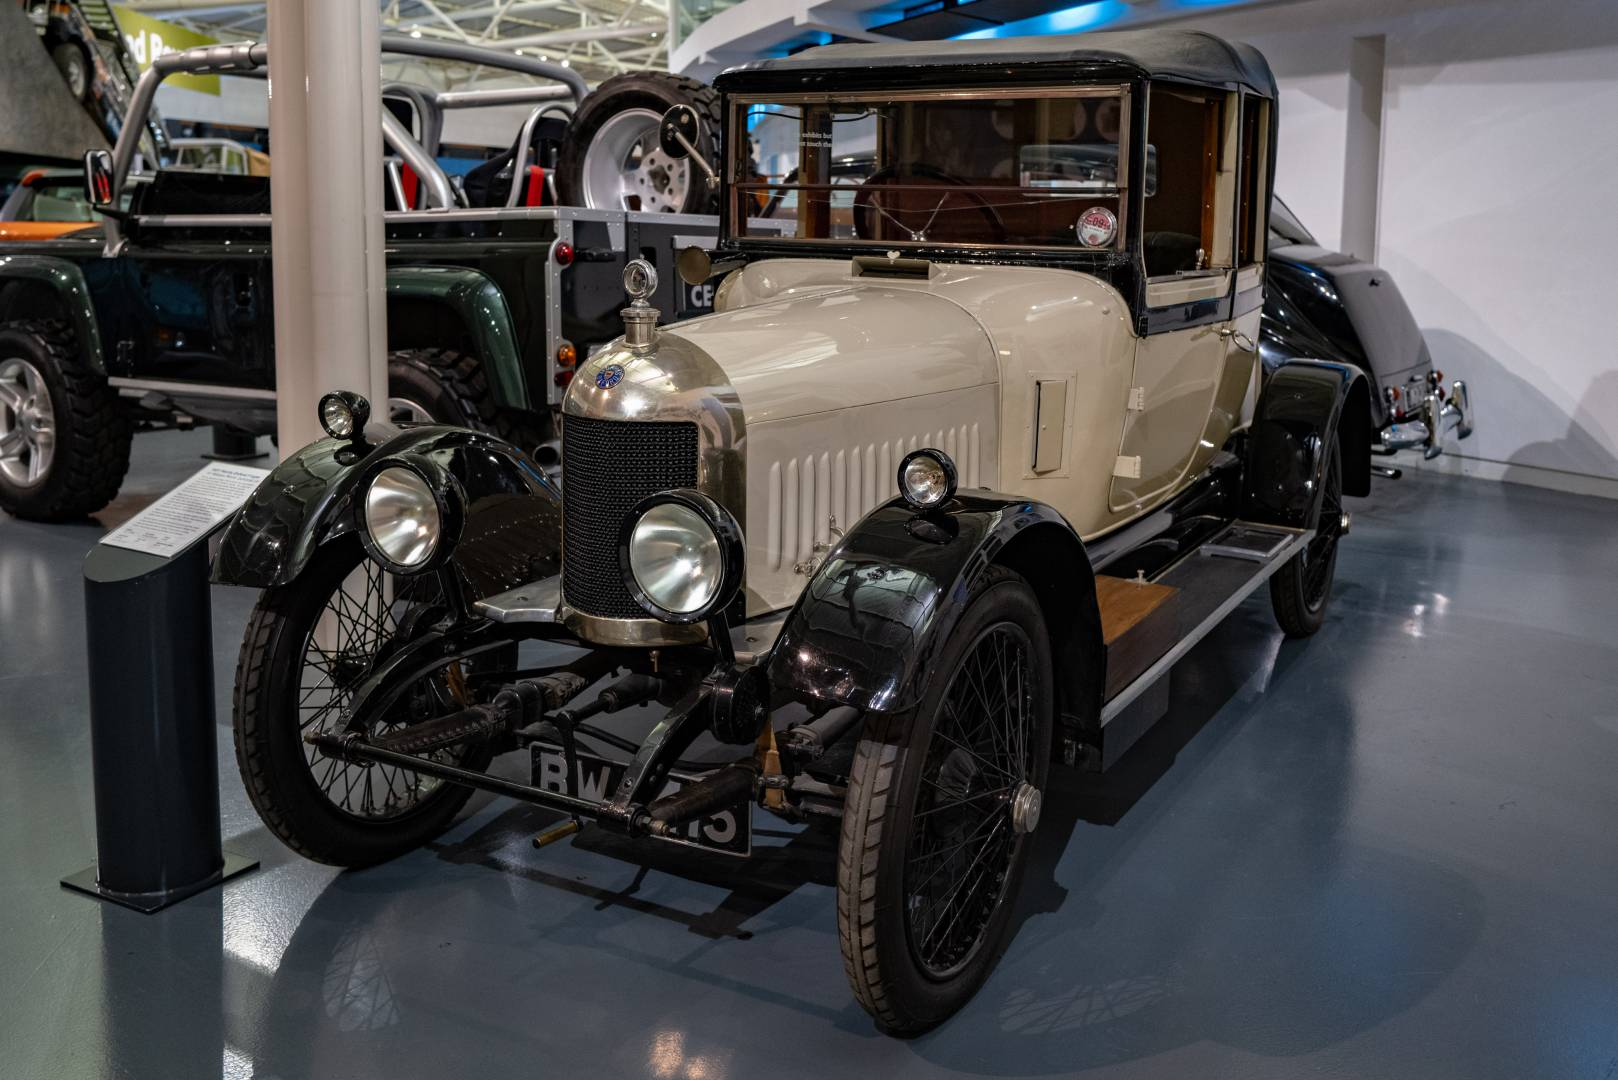 """Sir William Morris's personal transport in 1921, the """"bullnose"""" Morris Oxford F-type. This car was the prototype for the six-cylinder Oxfords. Unfortunately it was not a great success and only 50 of these """"silent sixes"""" were produced."""